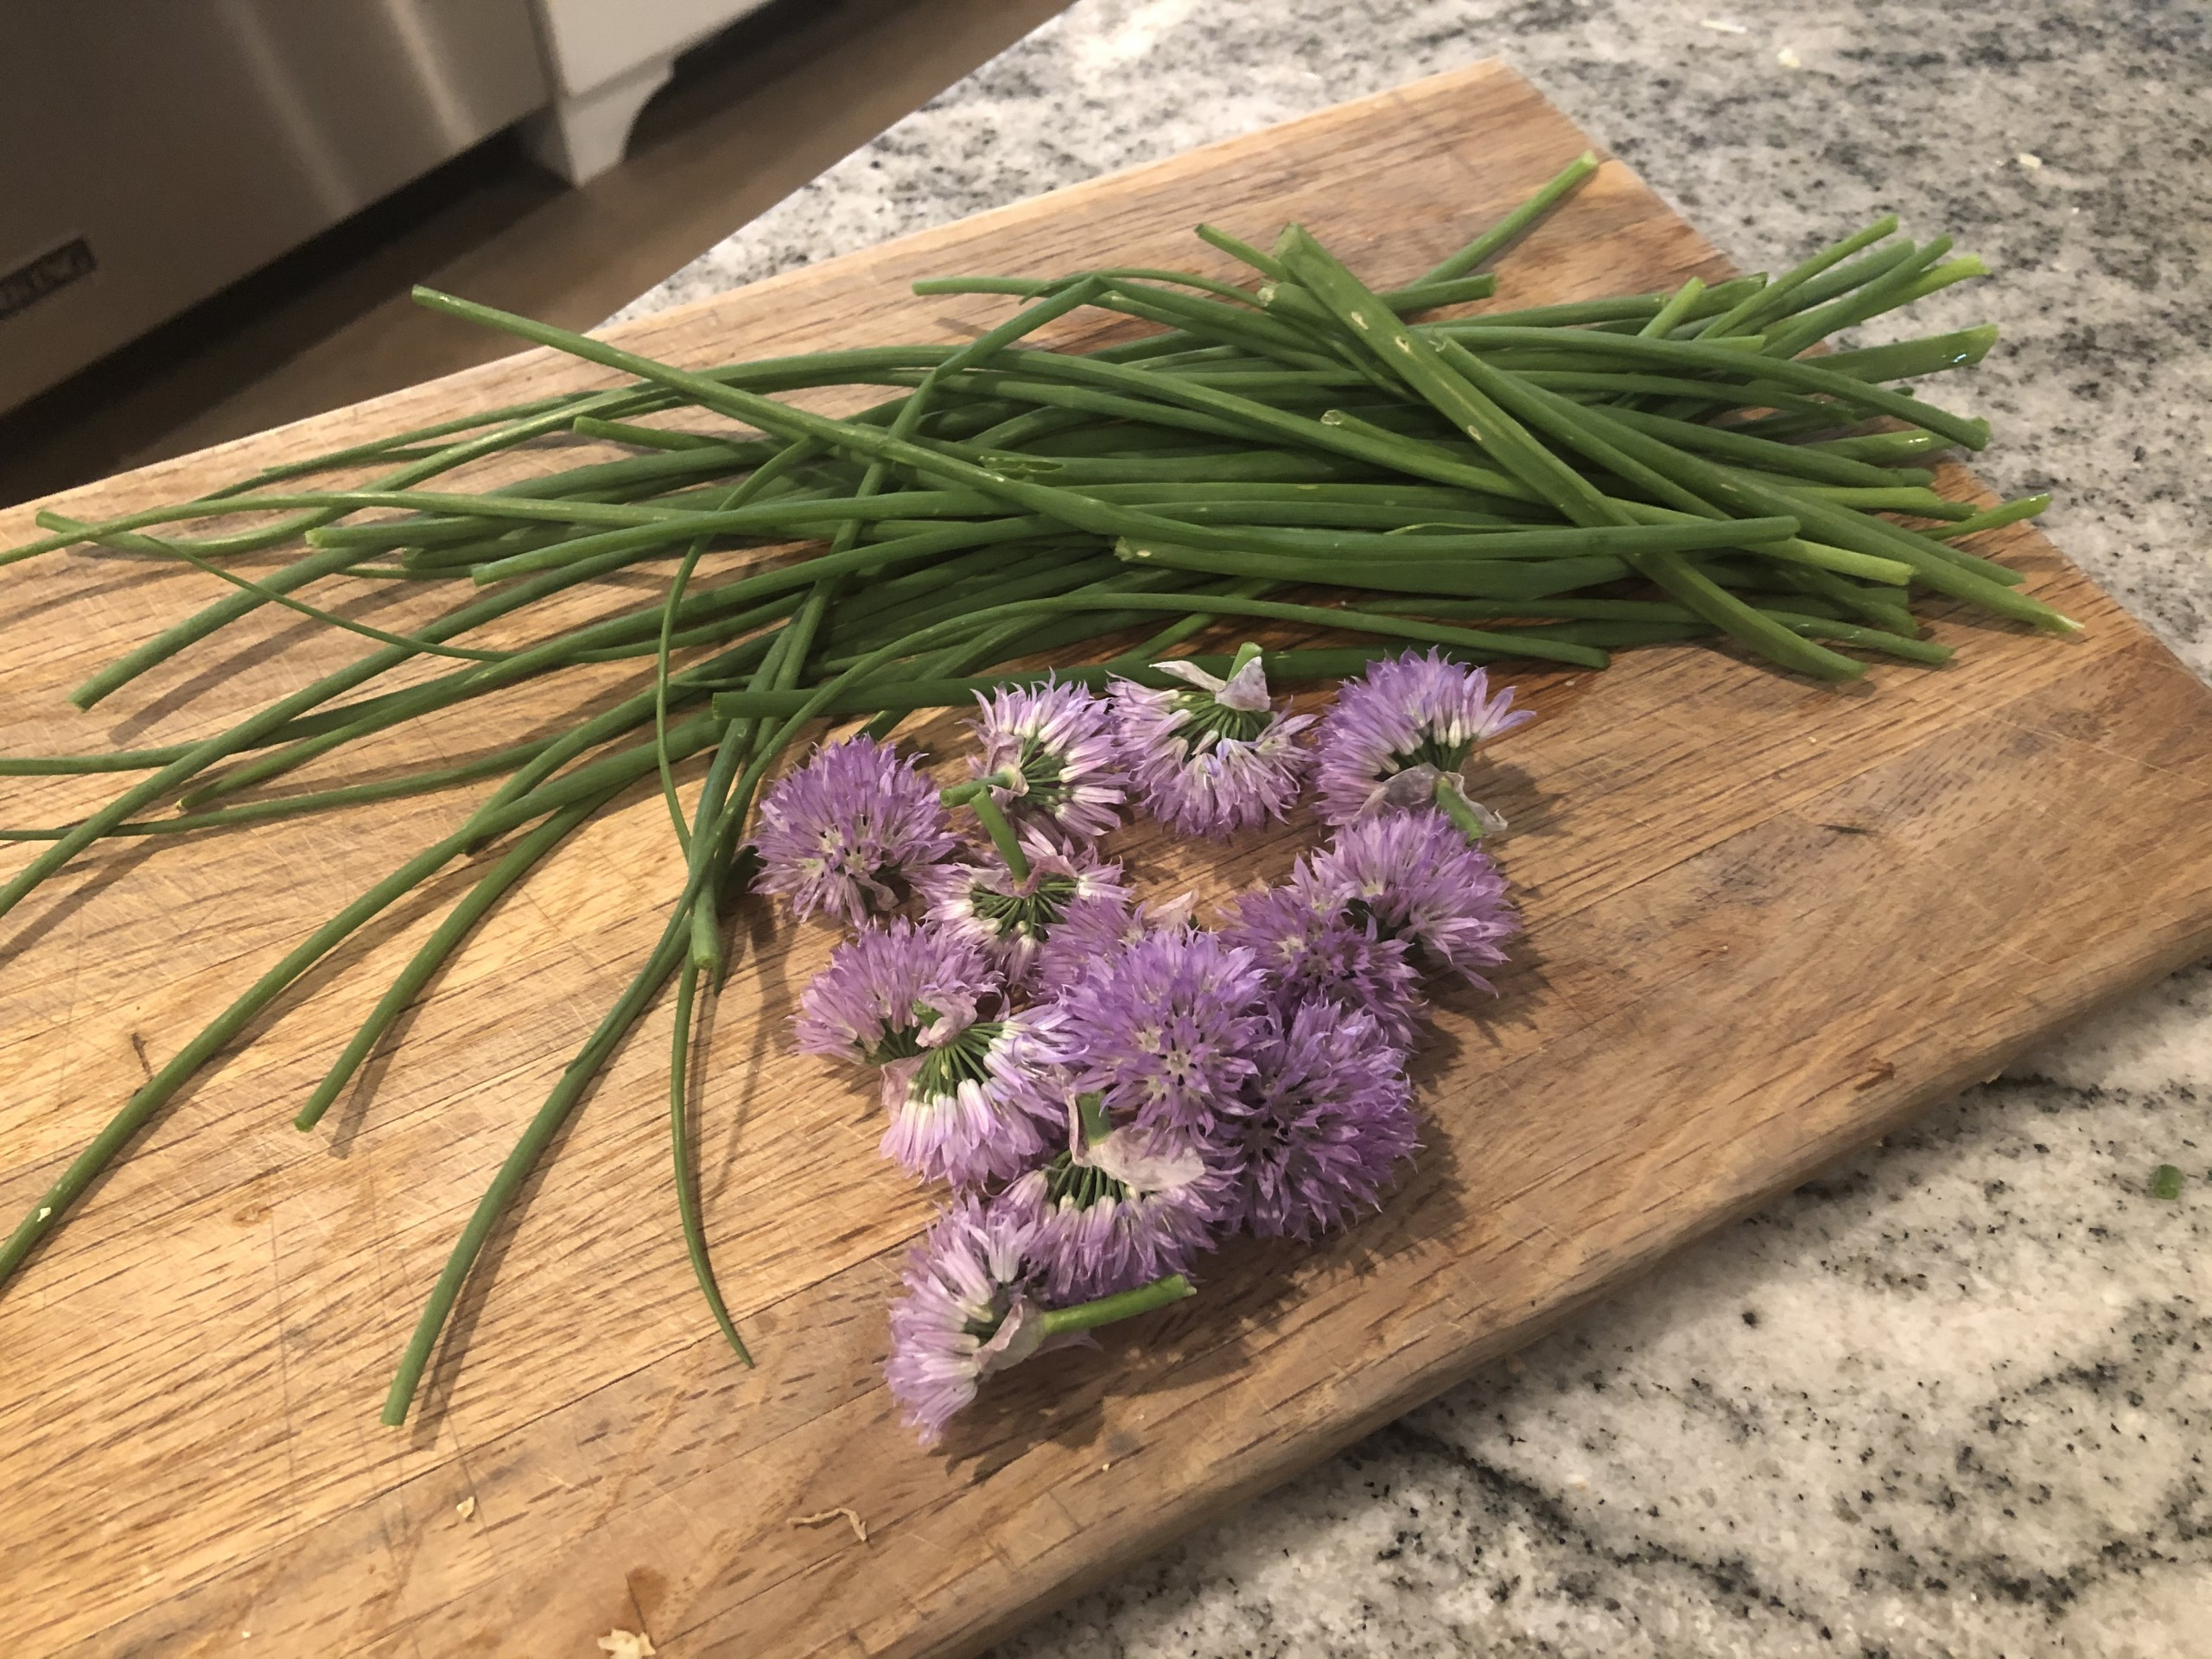 Harvested chives on my cutting board, with blossoms removed